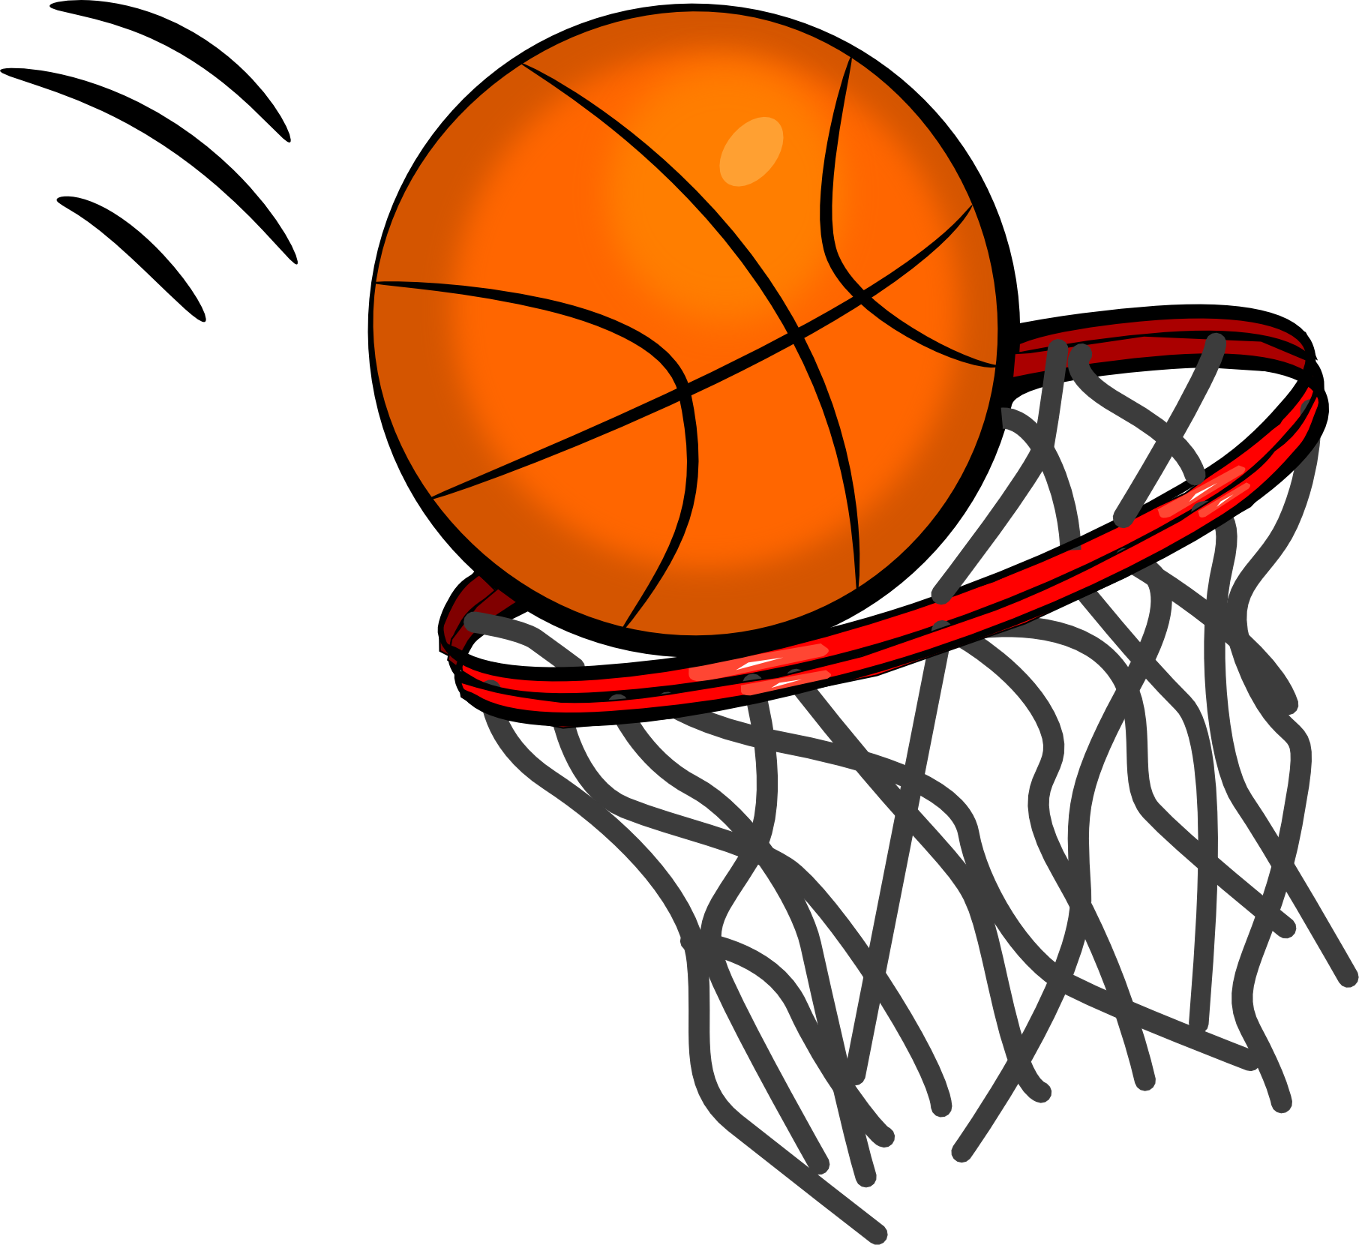 Clipart of a basketball illustration image